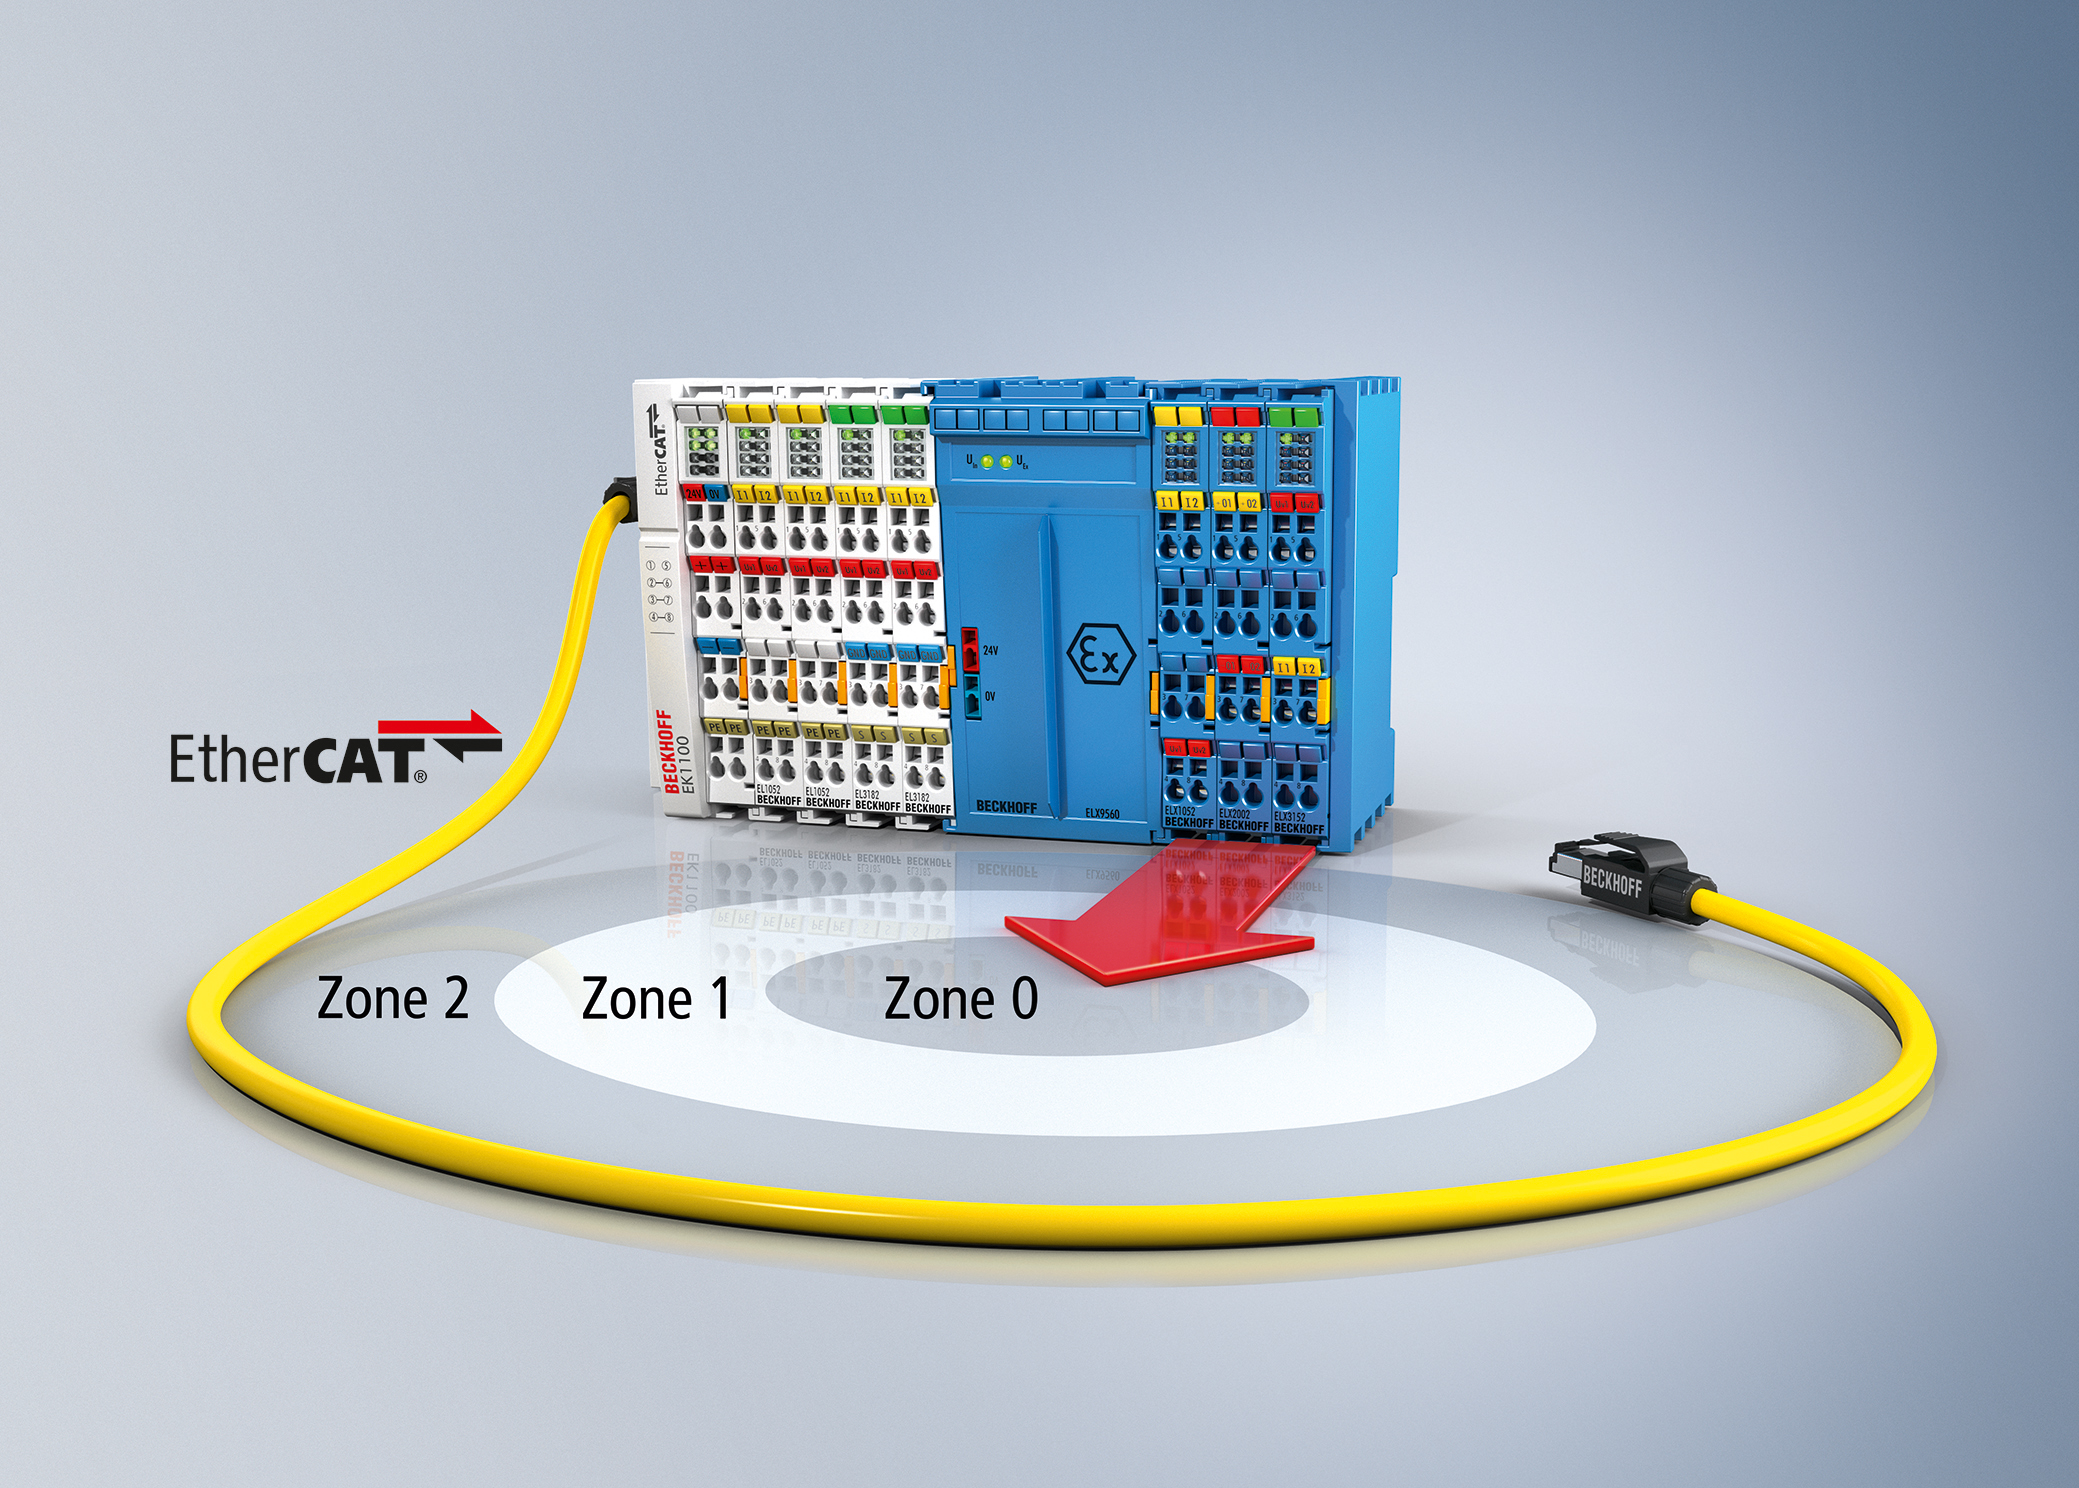 Beckhoff Sales Krovel Wiring Diagram Elx Ethercat Terminals For Explosion Protection